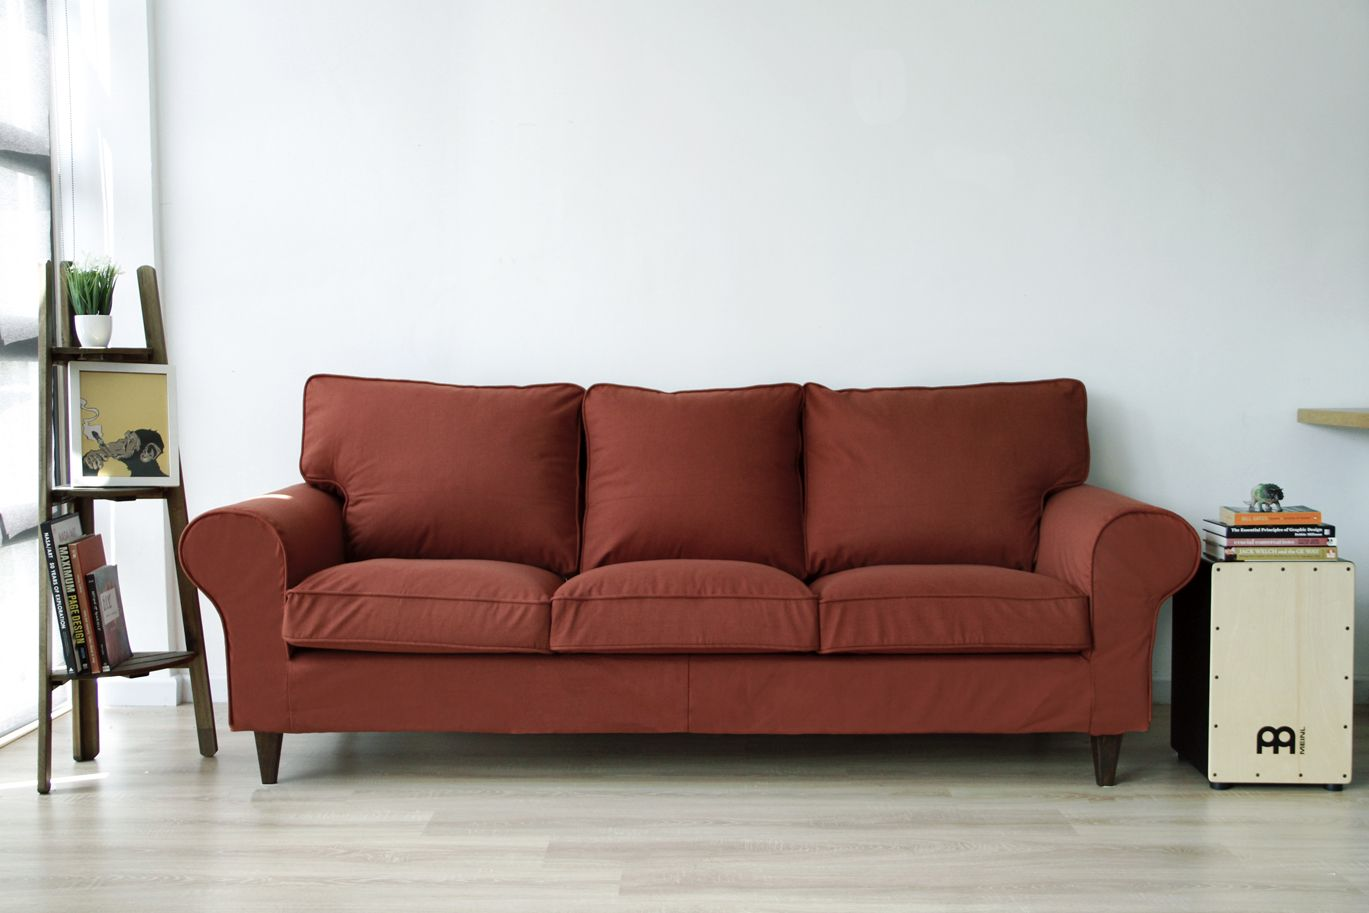 Classic Ikea Ektorp Sofa Turned Modern Contemporary Snug Fit Slipcovers With Some Light Diy Velcro Stapling Ektorp Sofa Ektorp Sofa Cover Ikea Ektorp Sofa